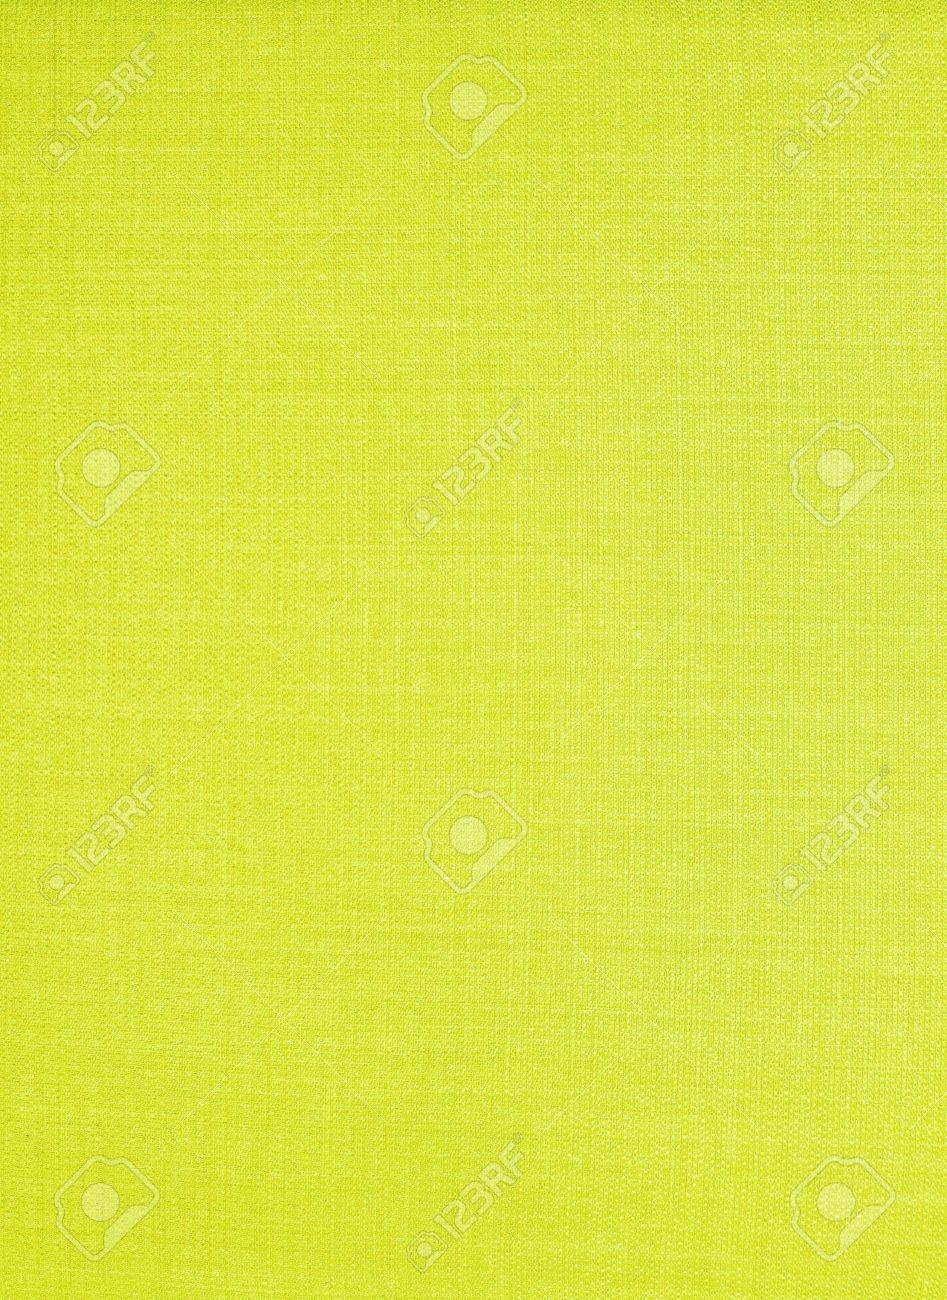 Light Green Fabric Texture Stock Photo, Picture And Royalty Free ...